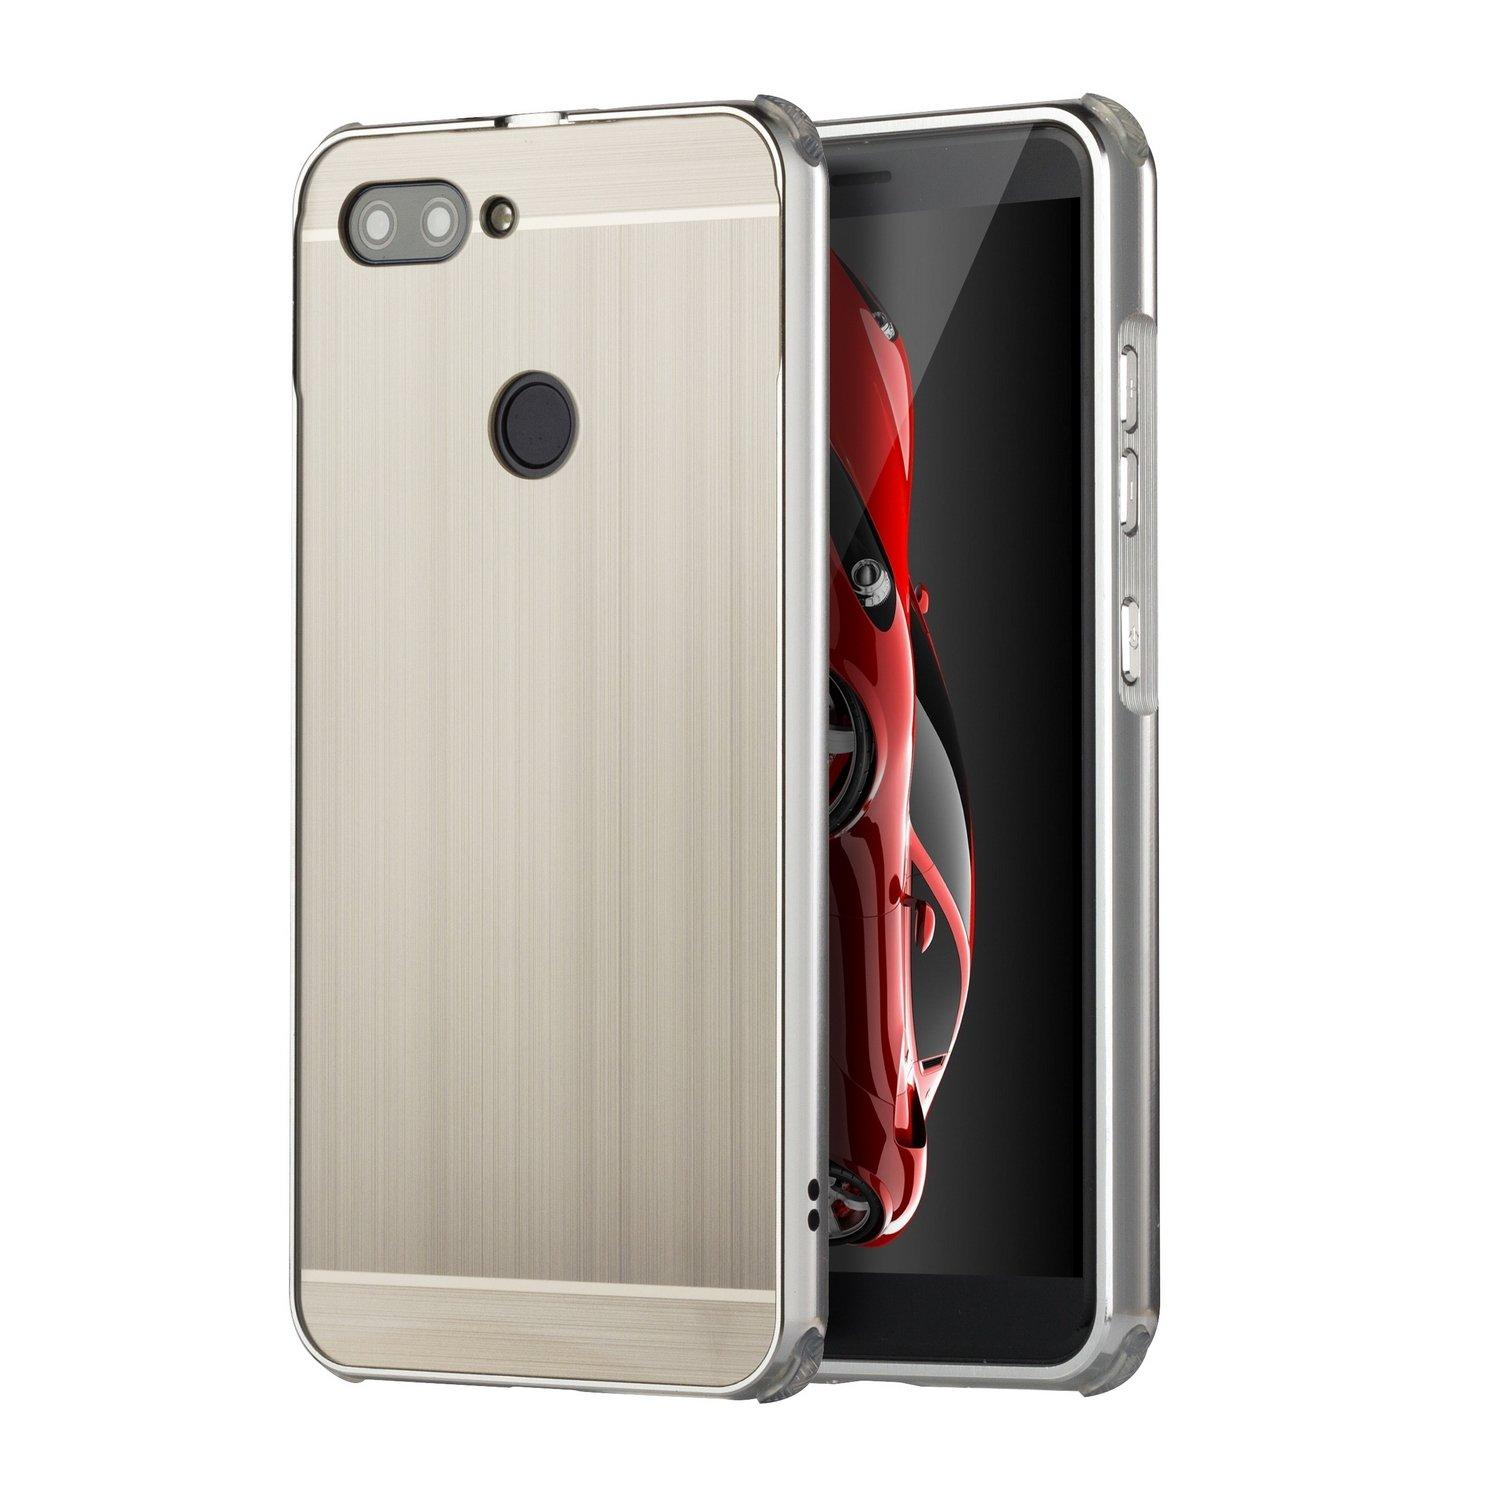 PHP 269. Asus ZenFone Max Plus M1(ZB570TL) Luxury Ultra Thin Metal Brushed Premium Aluminum Shockproof Protective Bumper Hard Back Case CoverPHP269